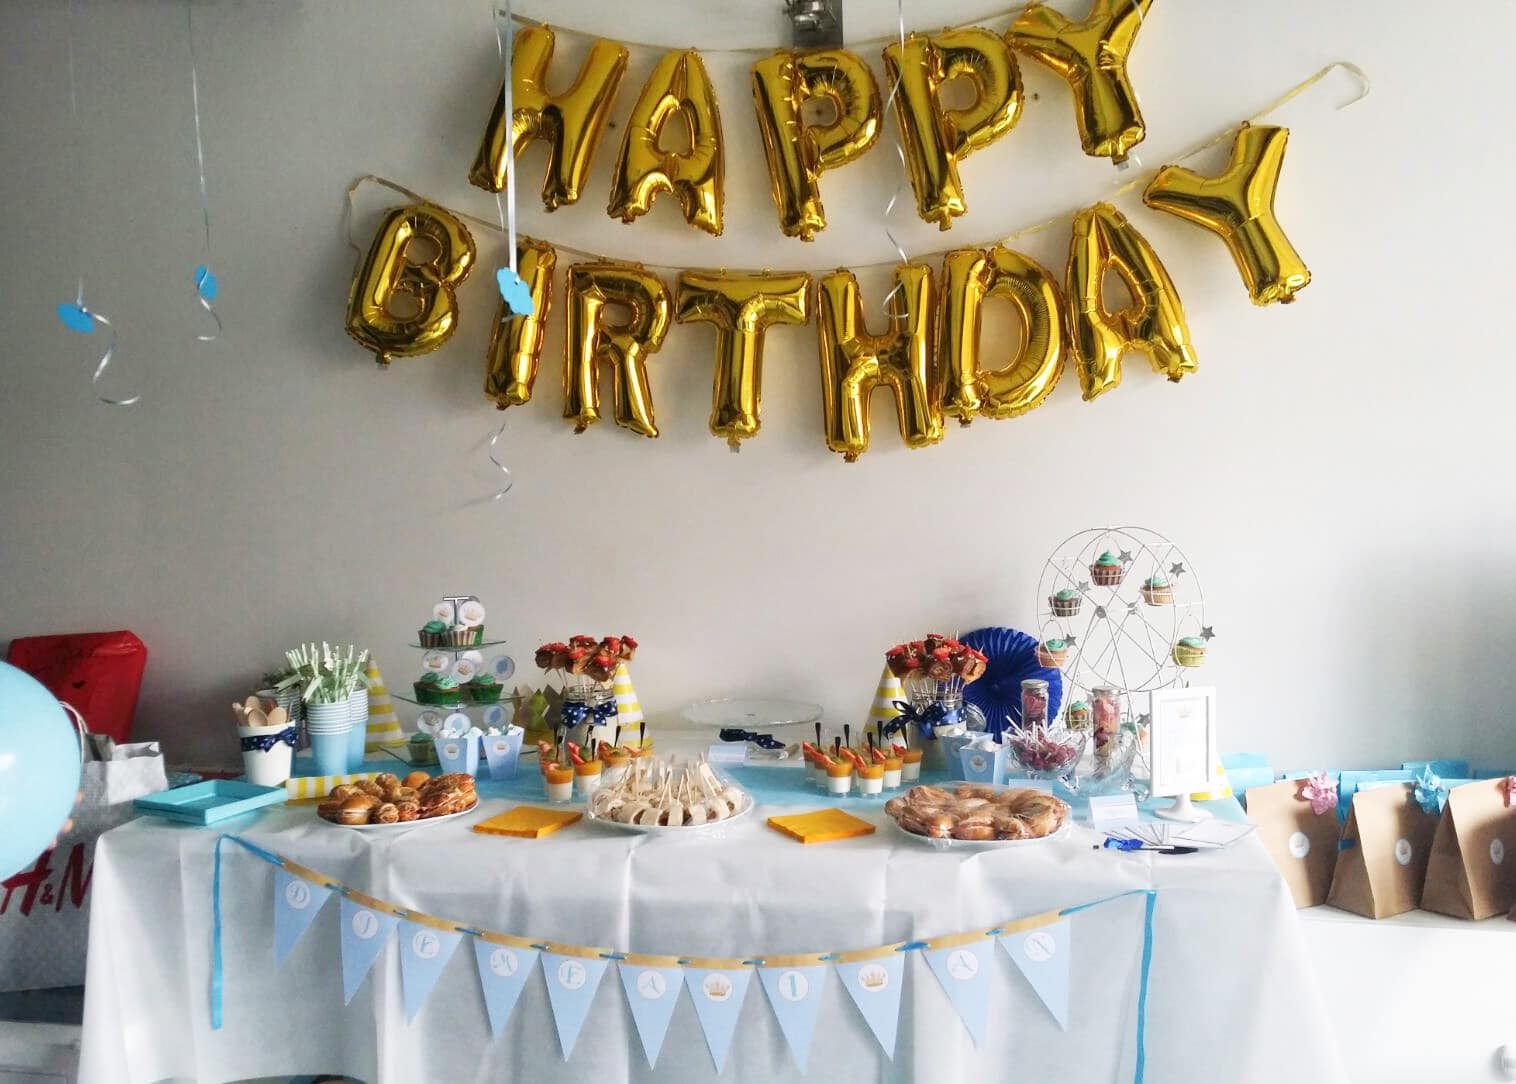 Deco De Table Anniversaire Deco Table Anniversaire Bebe 1 An